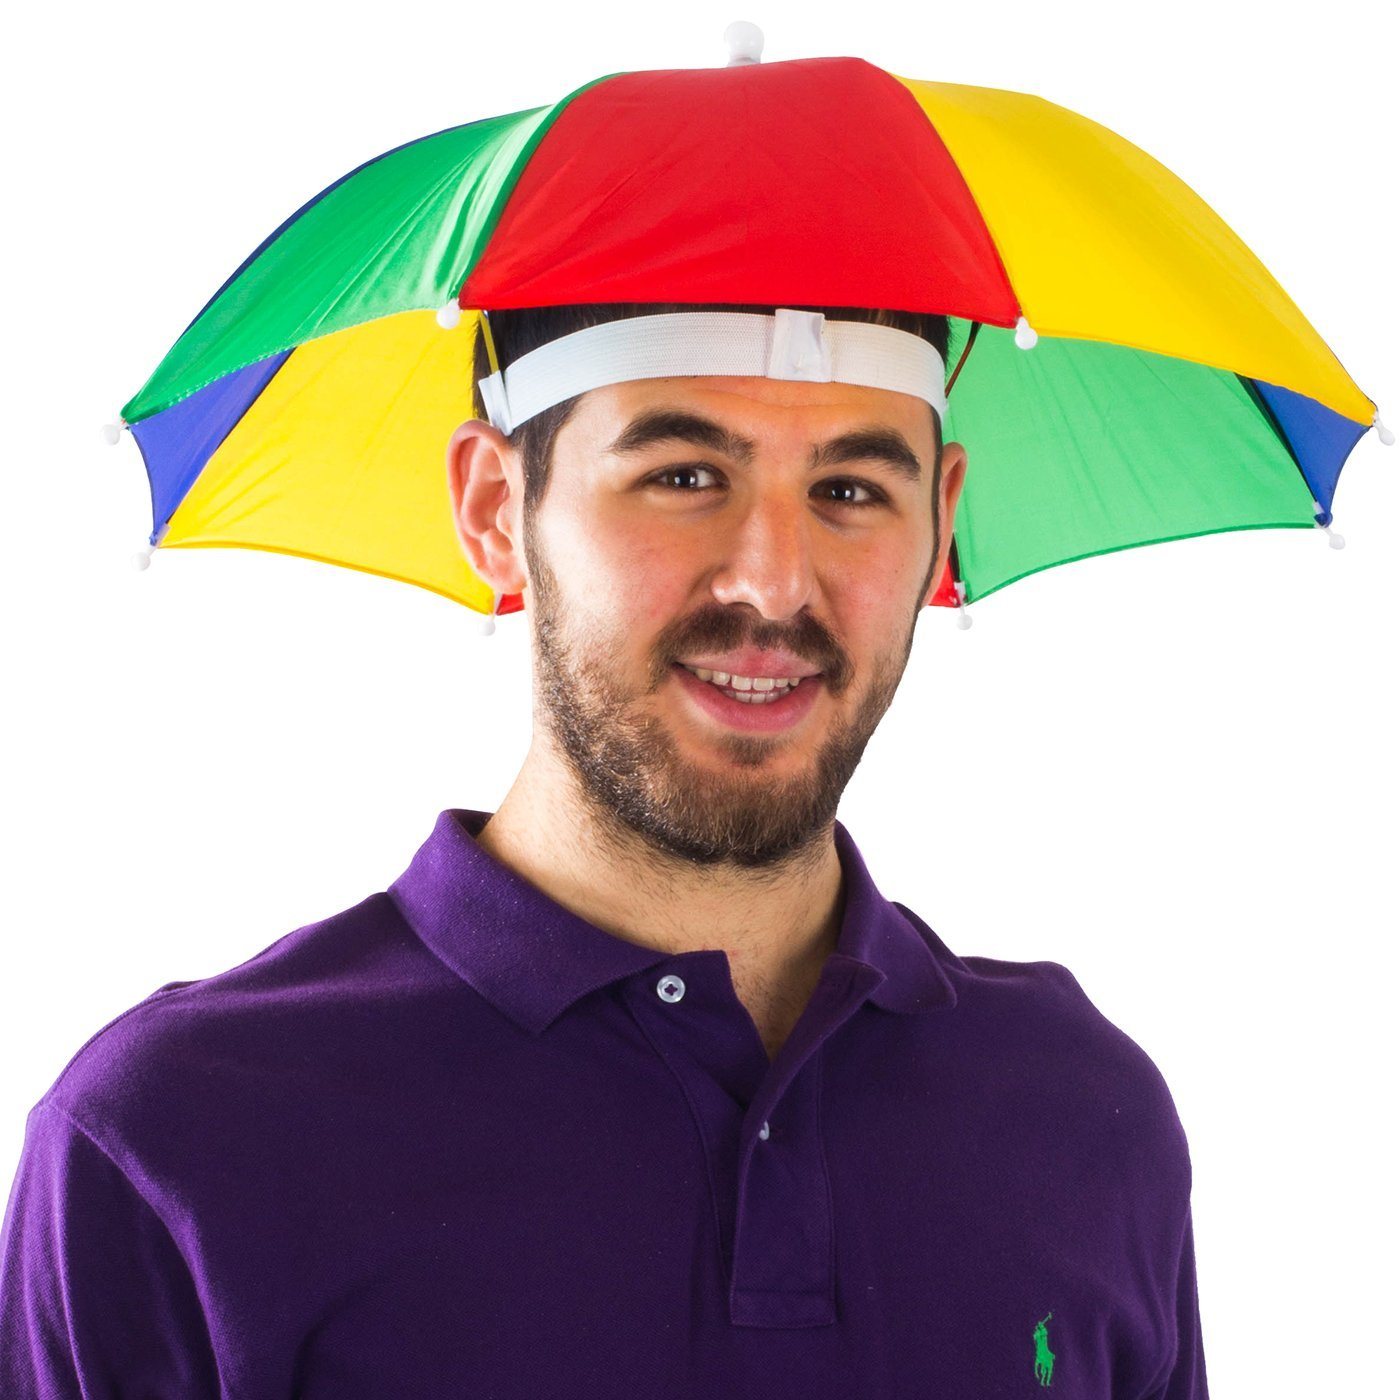 291f4bb916b82 Get Quotations · Funny Party Hats Umbrella Hat - Fishing Umbrella Hat For  Kids and Adults - Elastic